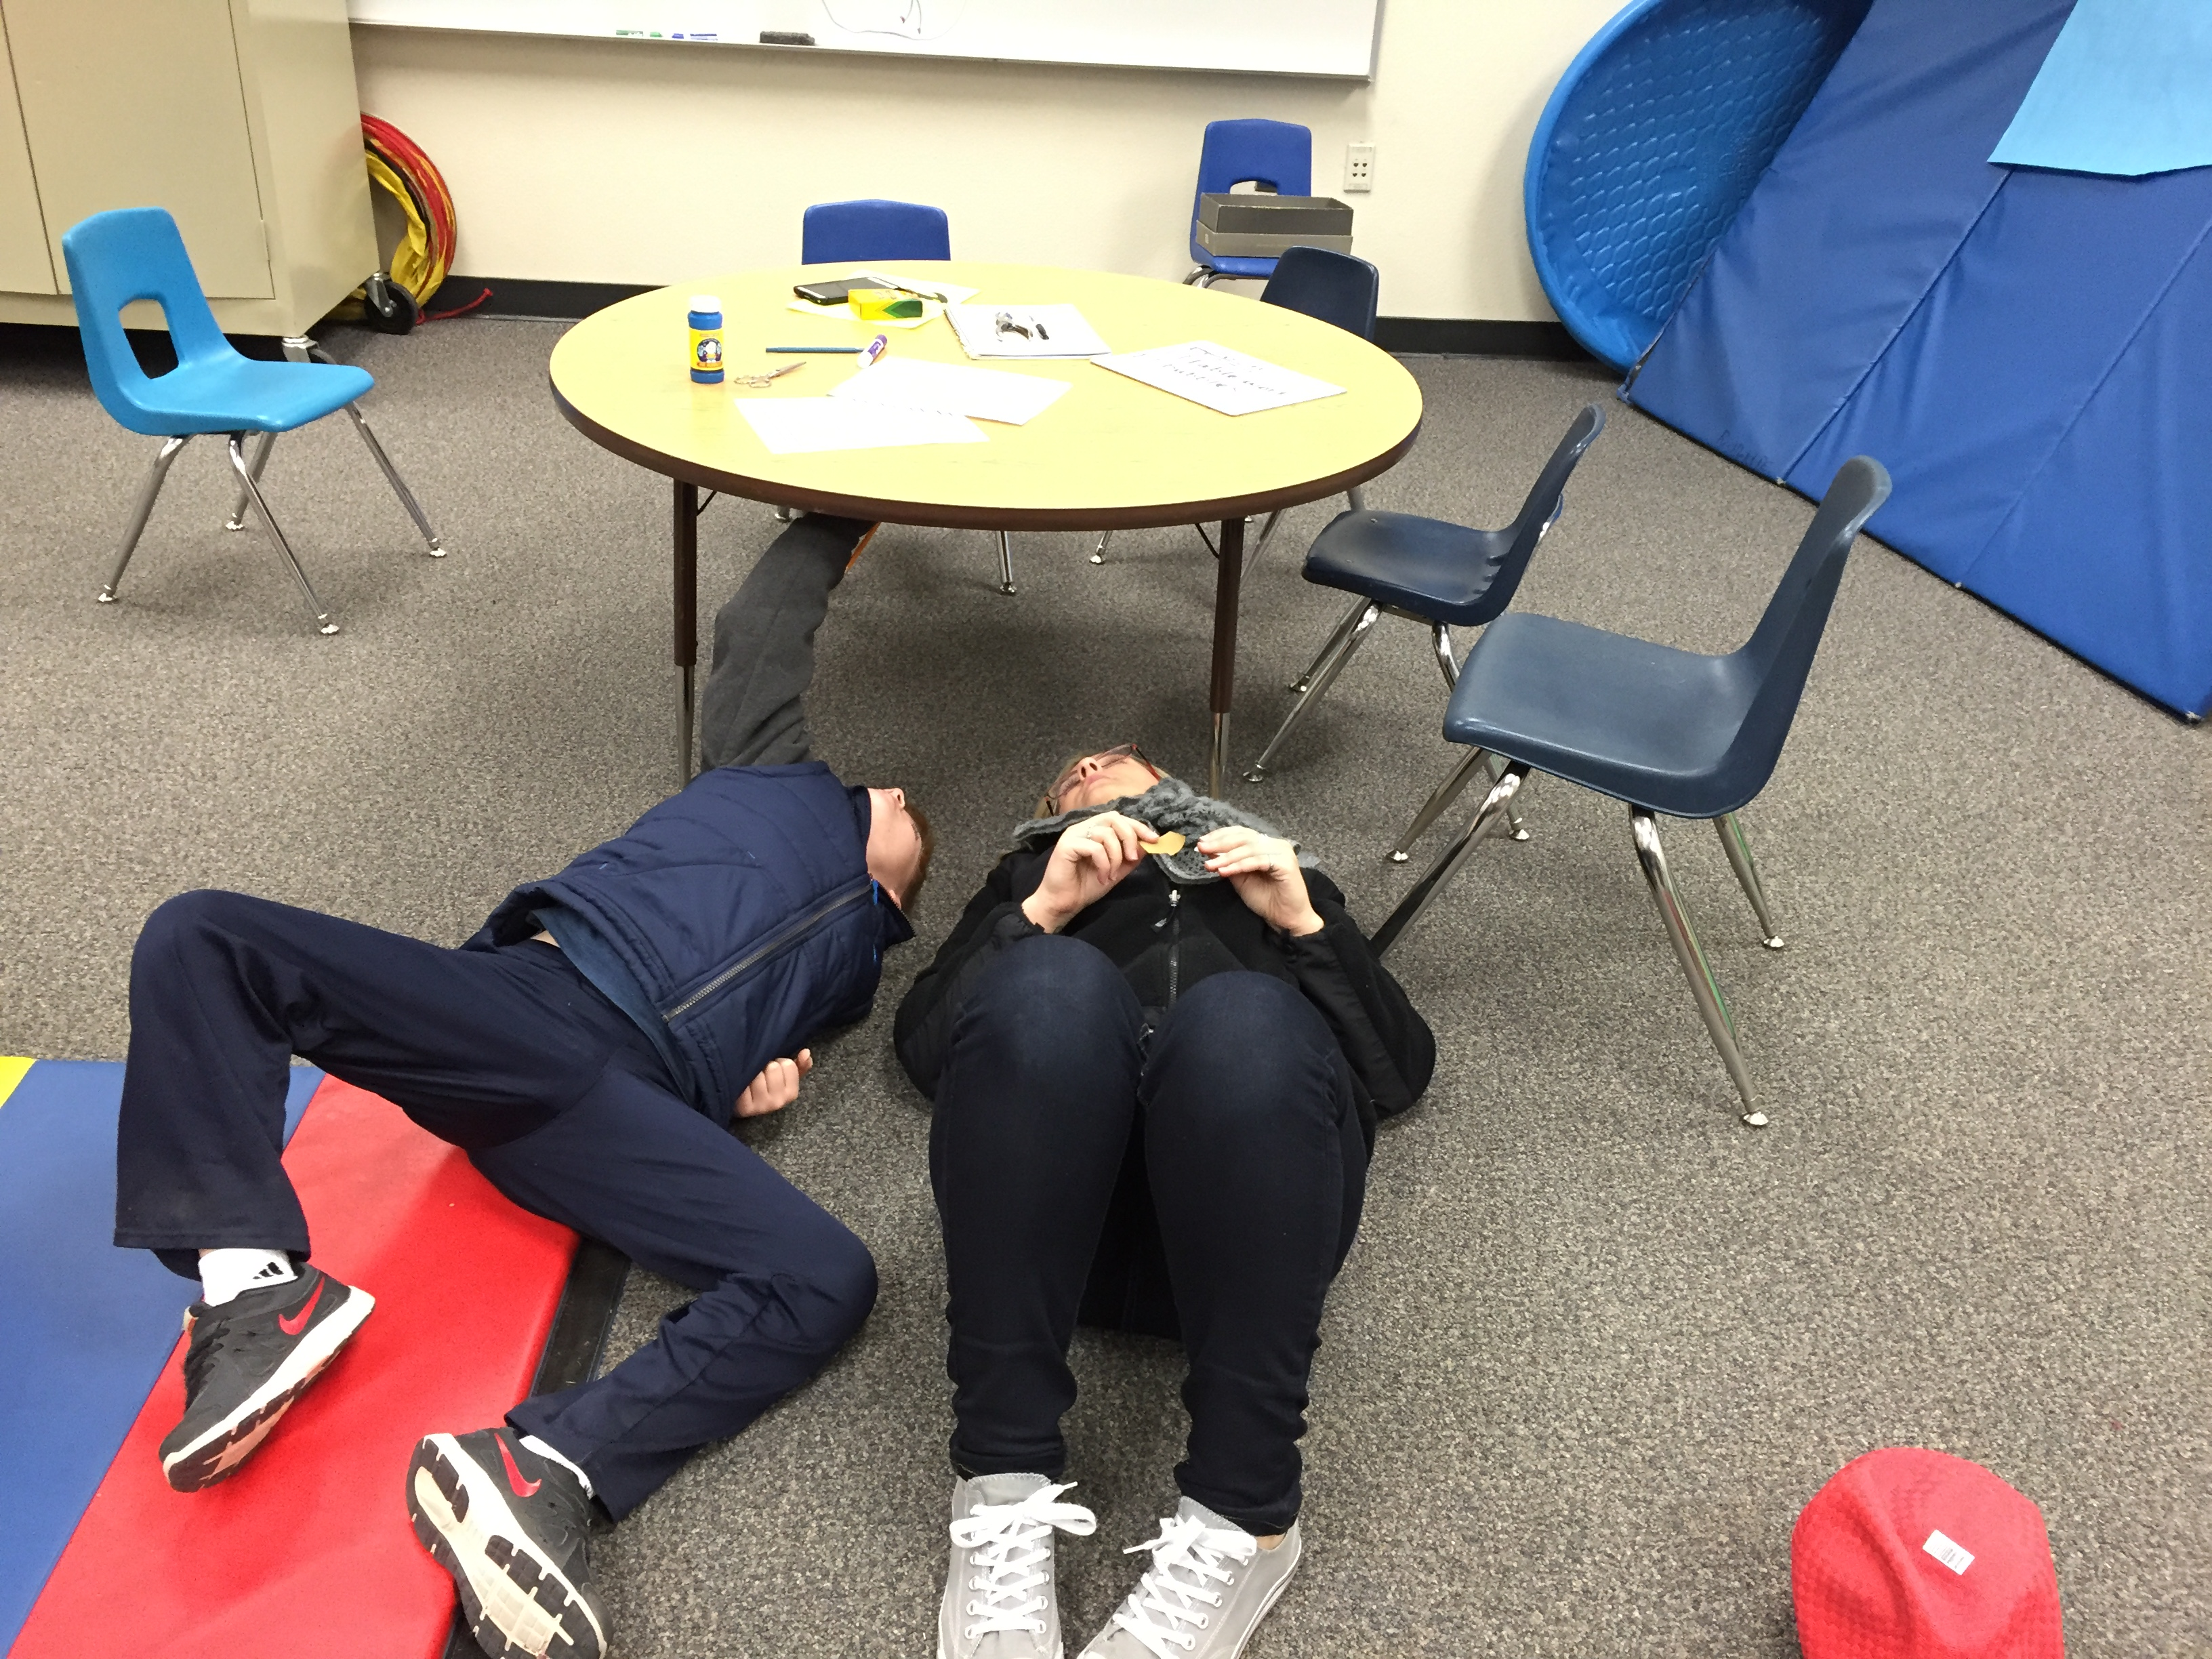 Two people laying on floor looking under table